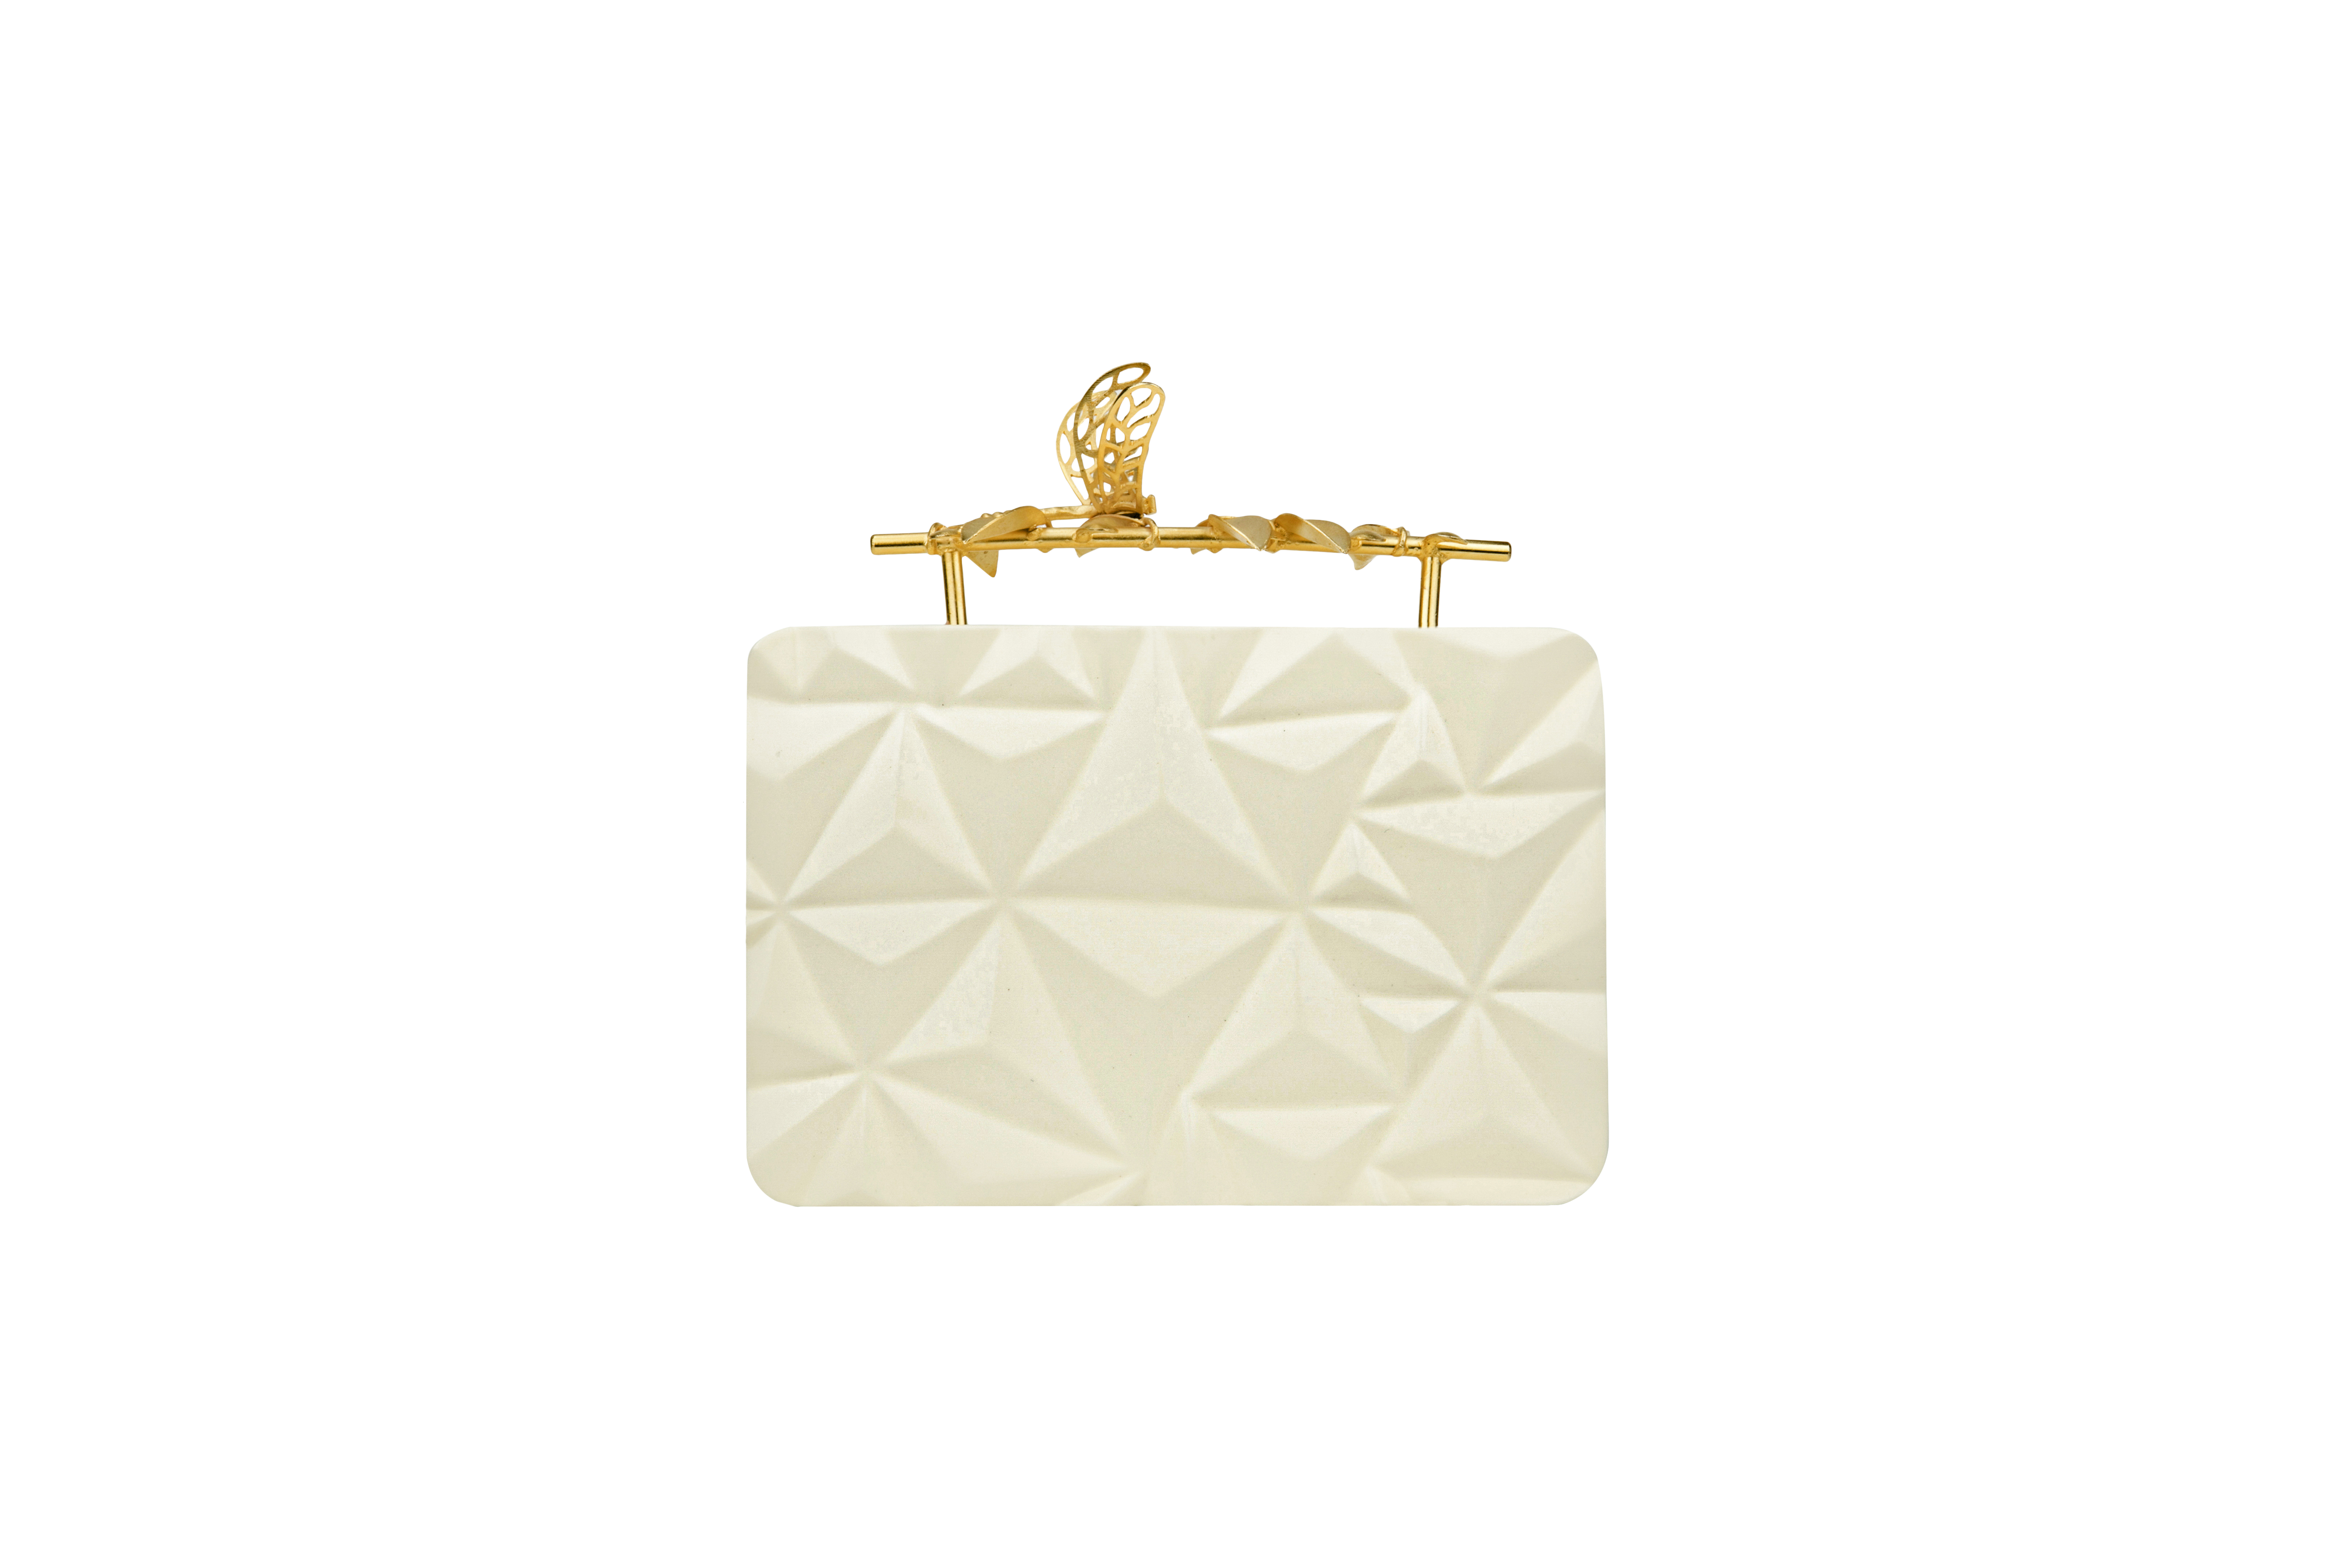 Triangle Cream Firefly Clutch by Duet Luxury on curated-crowd.com